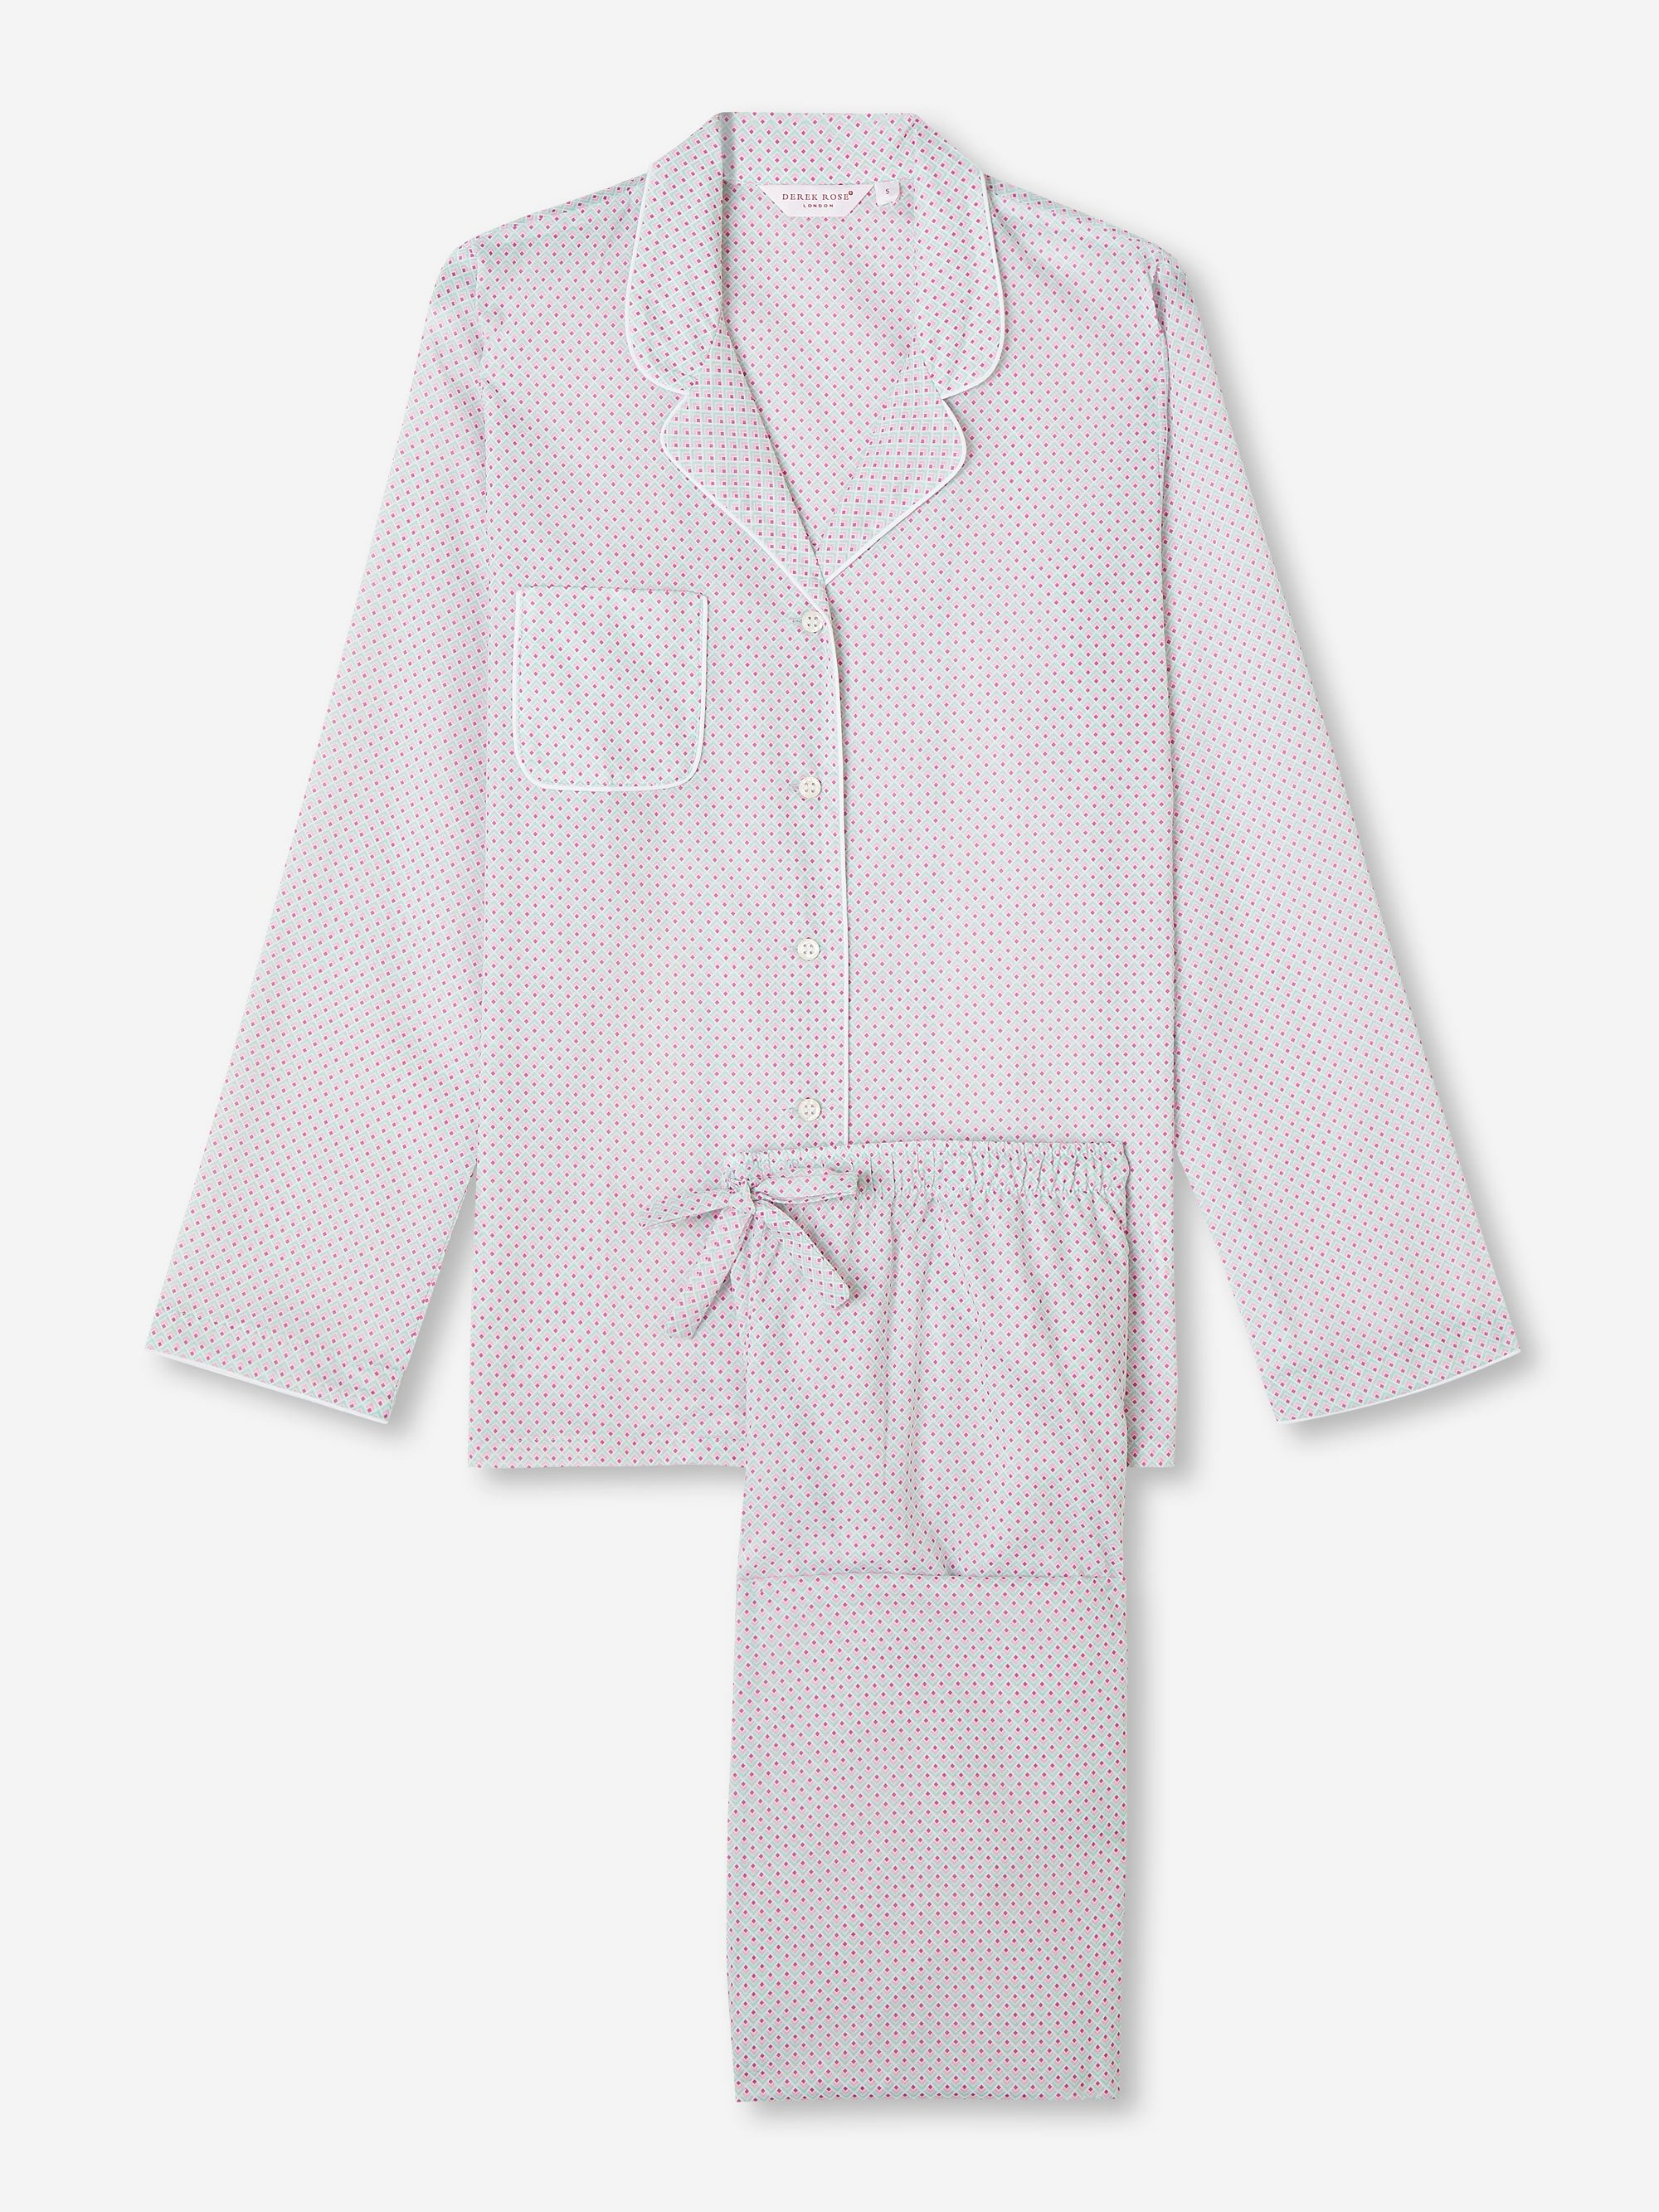 Women's Pyjamas Ledbury 40 Cotton Batiste Pink